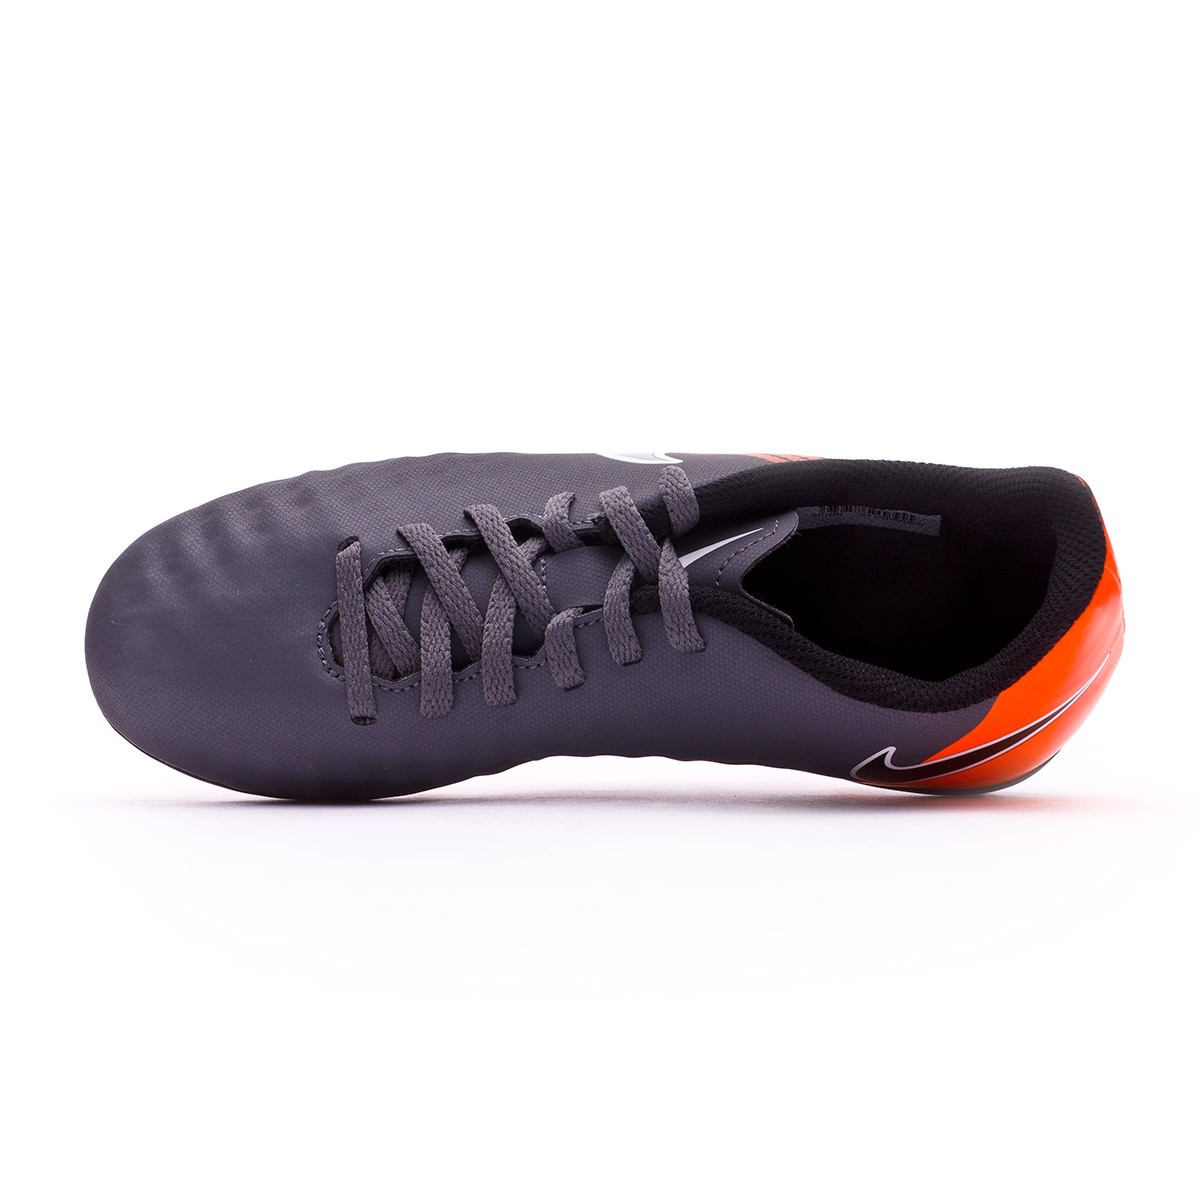 77c38c30fc7 Boot Nike Kids Magista Obra II Club FG Dark grey-Black-Total orange-White - Soloporteros  es ahora Fútbol Emotion